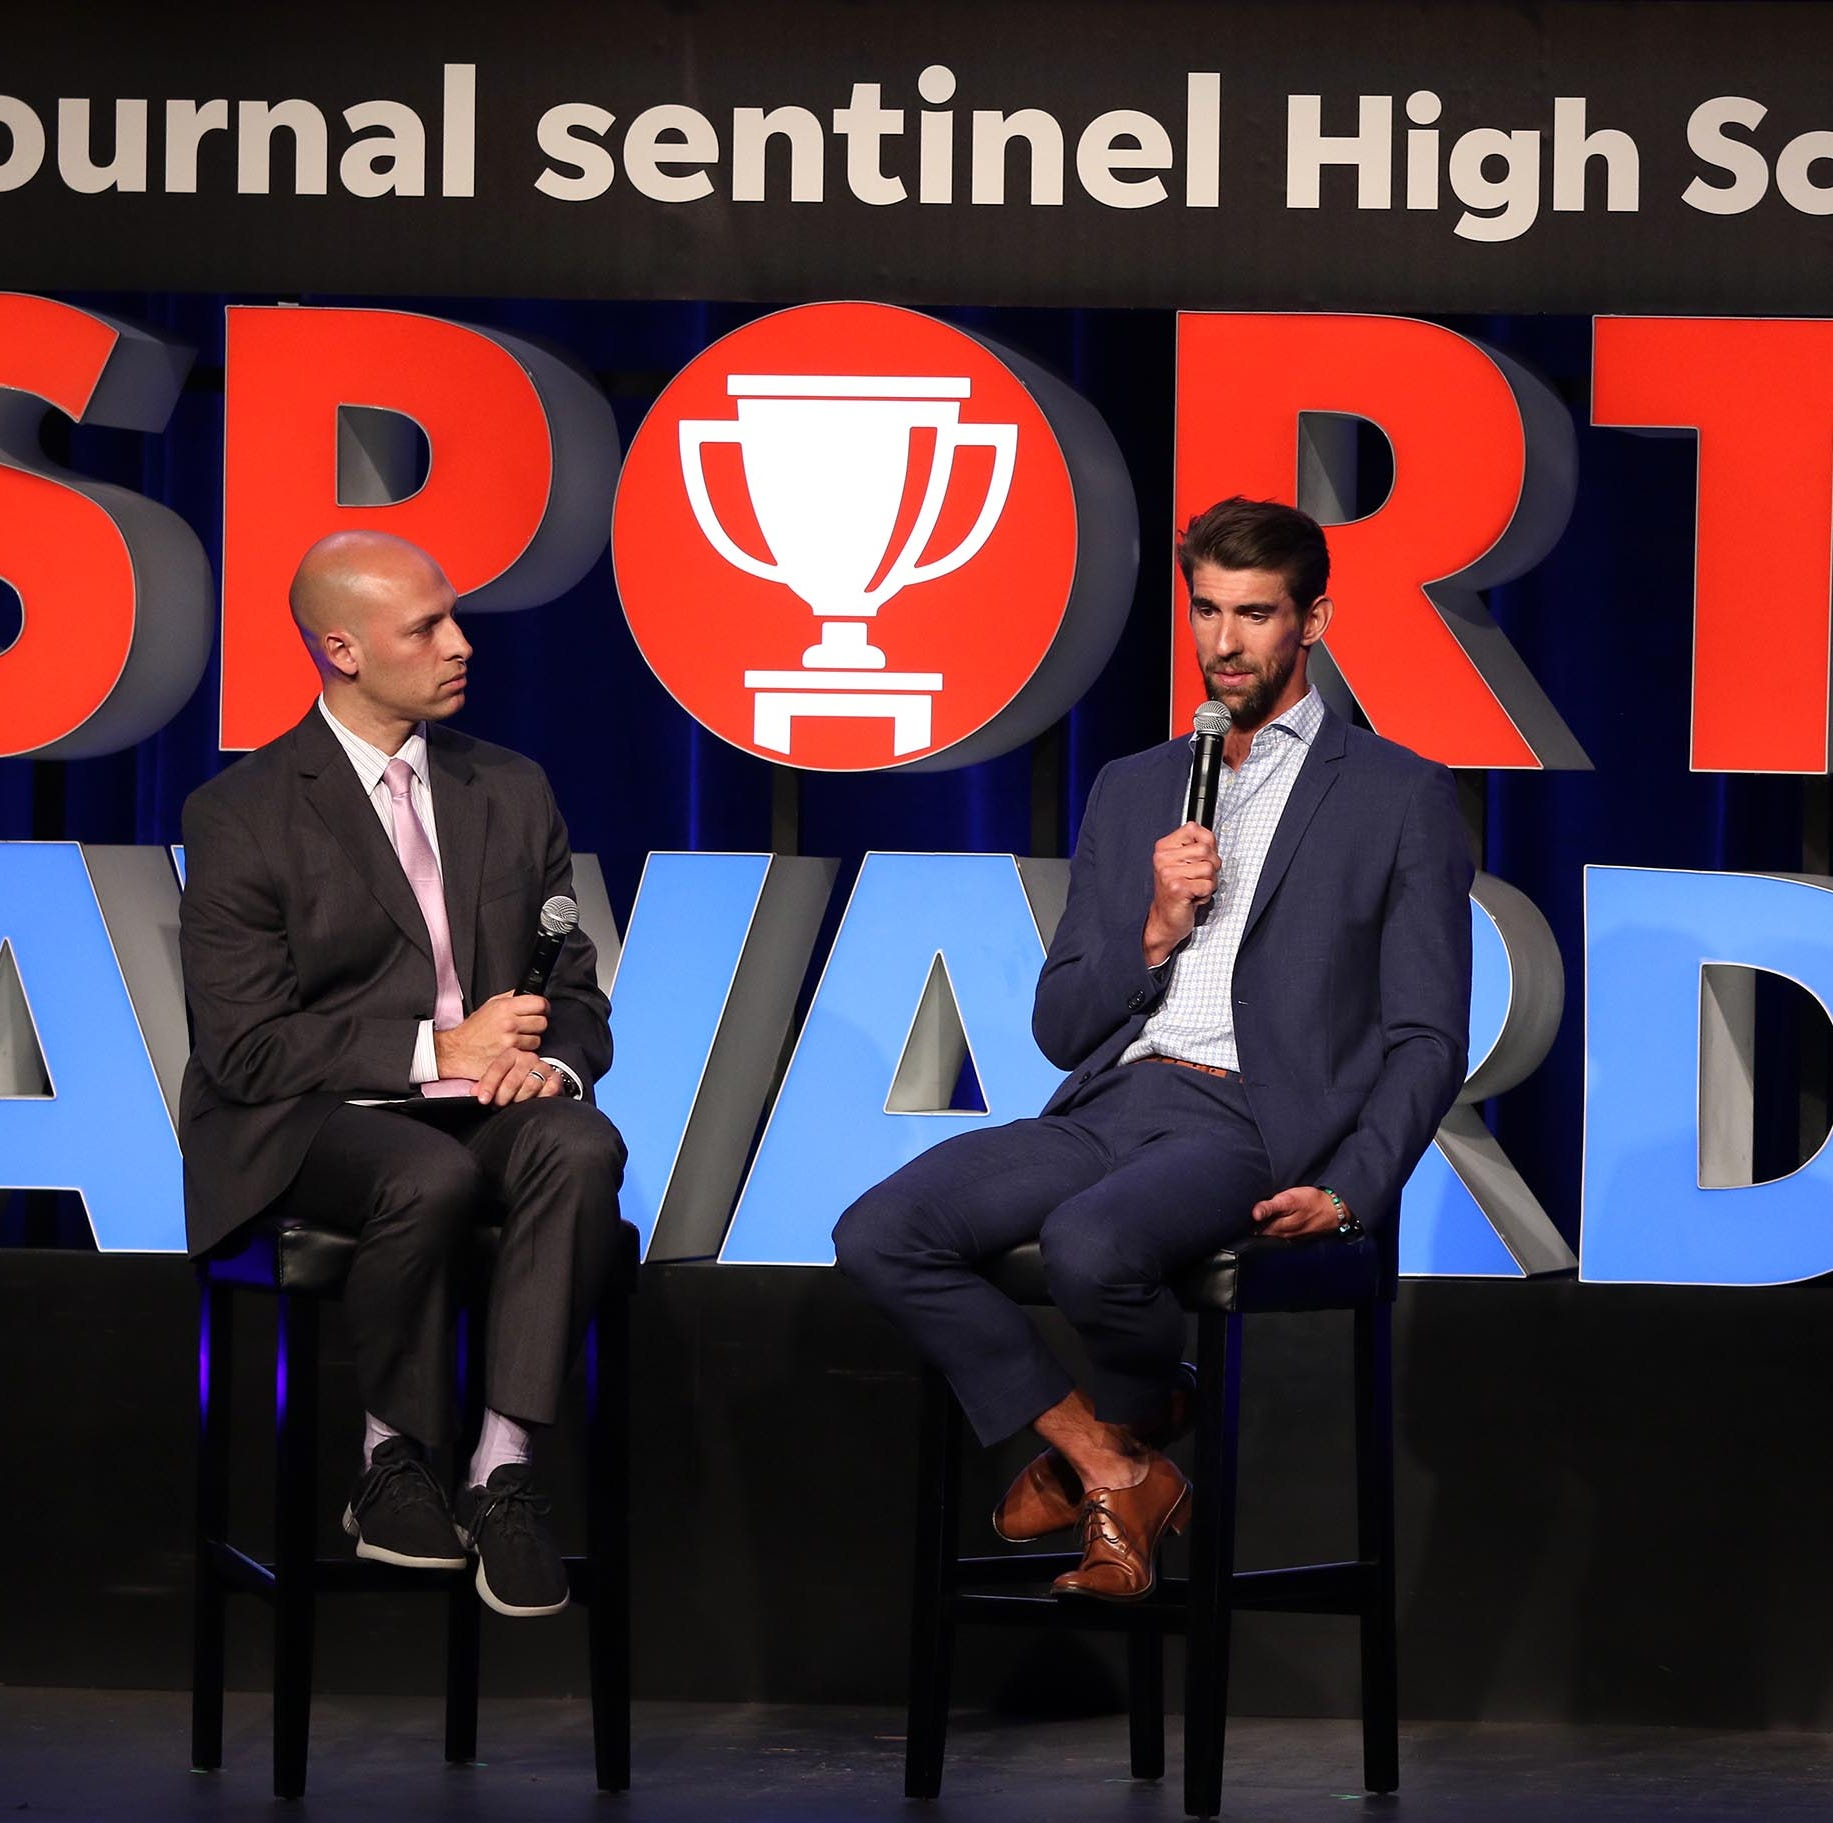 Seven things we learned about Michael Phelps at the Journal Sentinel High School Sports Awards